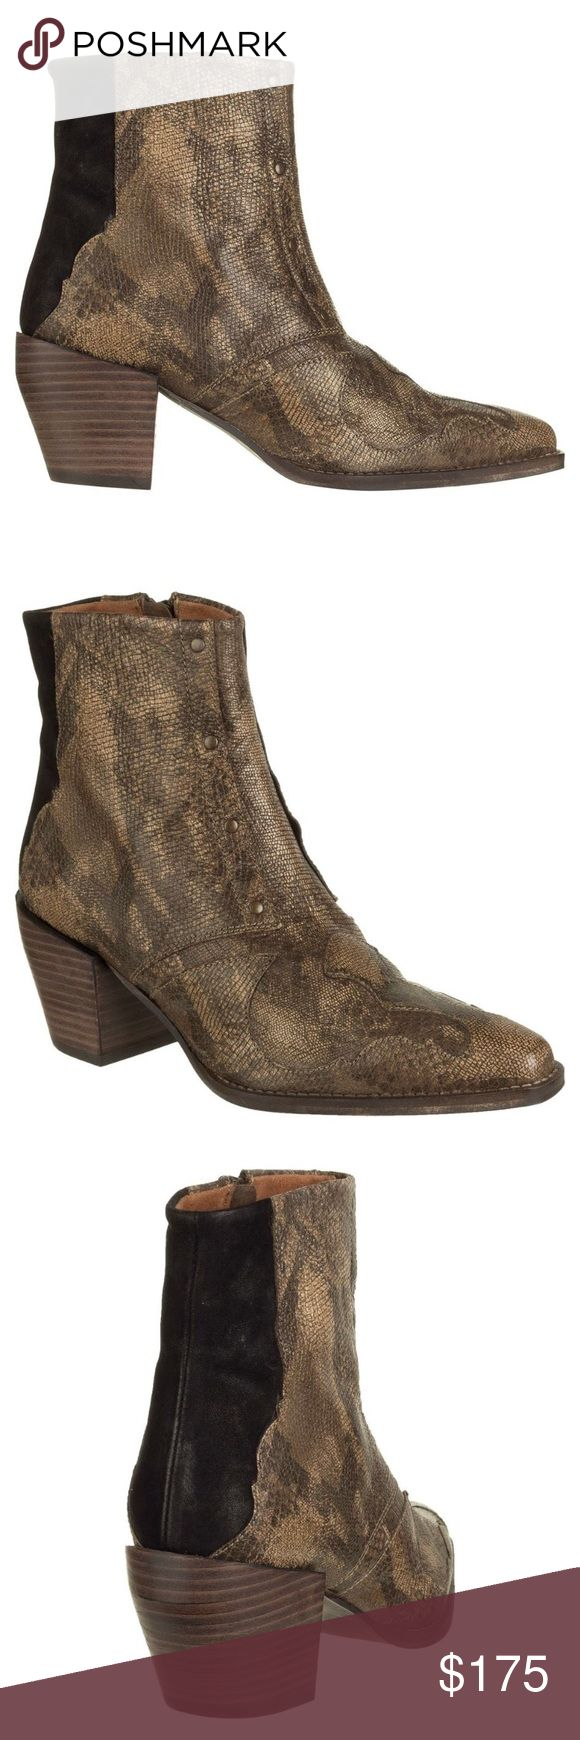 """NWT Free People Nevada Thunder boot, 8.5 NWT Free People Nevada Thunder boot, 8.5 Evocative of the open road, wide-eyed rattlesnakes, and red stained skies, The Nevada Thunder features a classic, cowboy boot silhouette, while the ankle height, embossed leather, and metal detailing adds a bit of cinnamon-whiskey kick to your outfit.  Soft, leather upper features zippered entry Embossed details 5"""" shaft 3"""" heel Free People Shoes"""